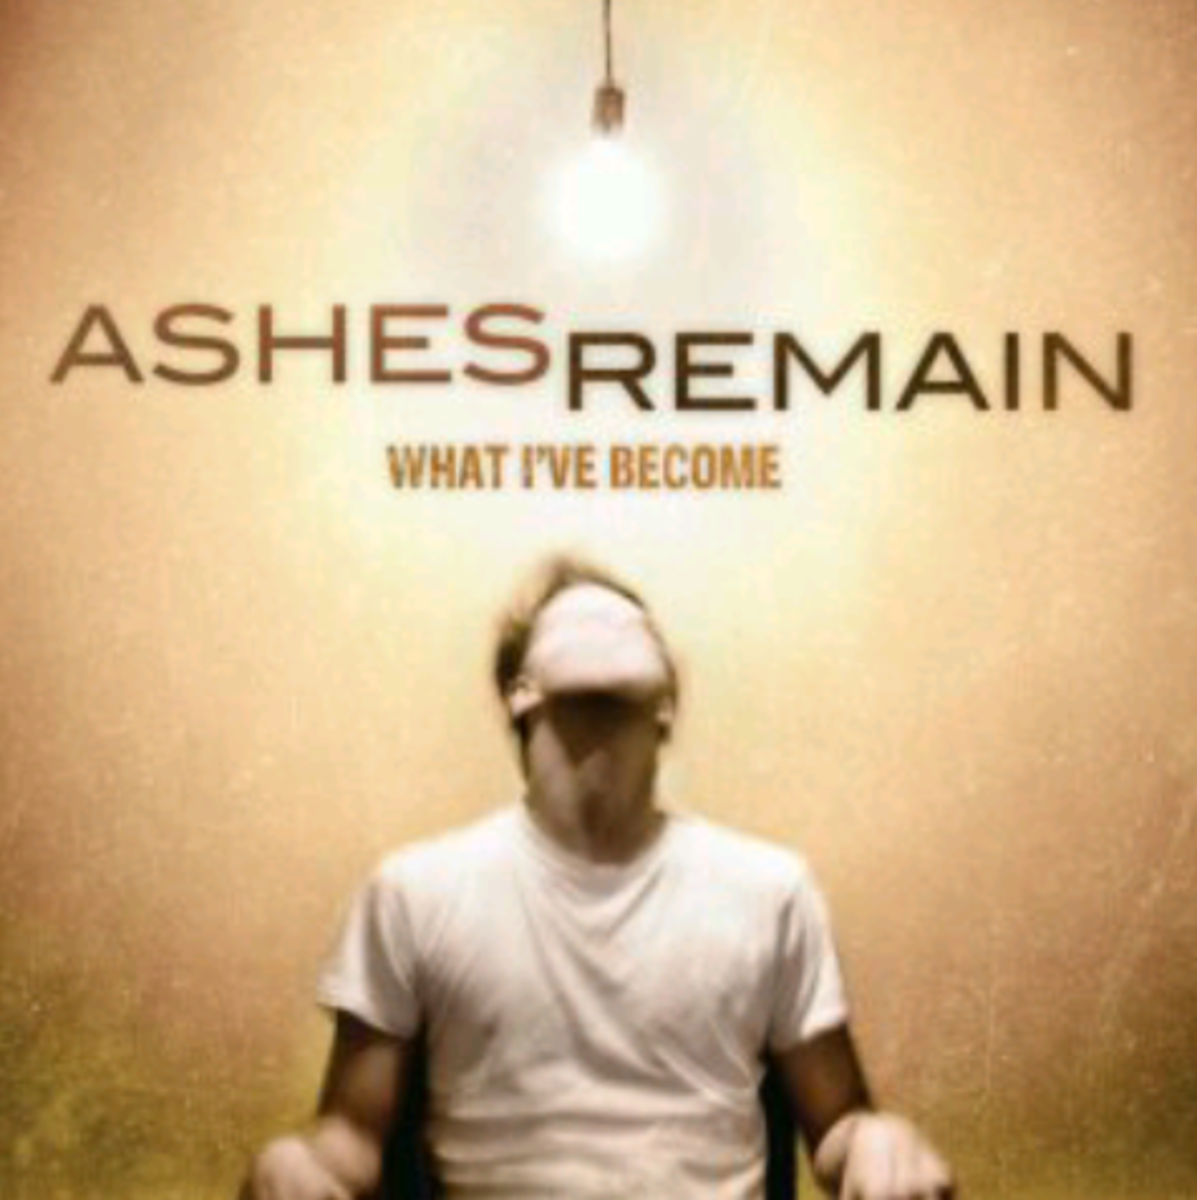 """What I've Become"" by Ashes Remain"